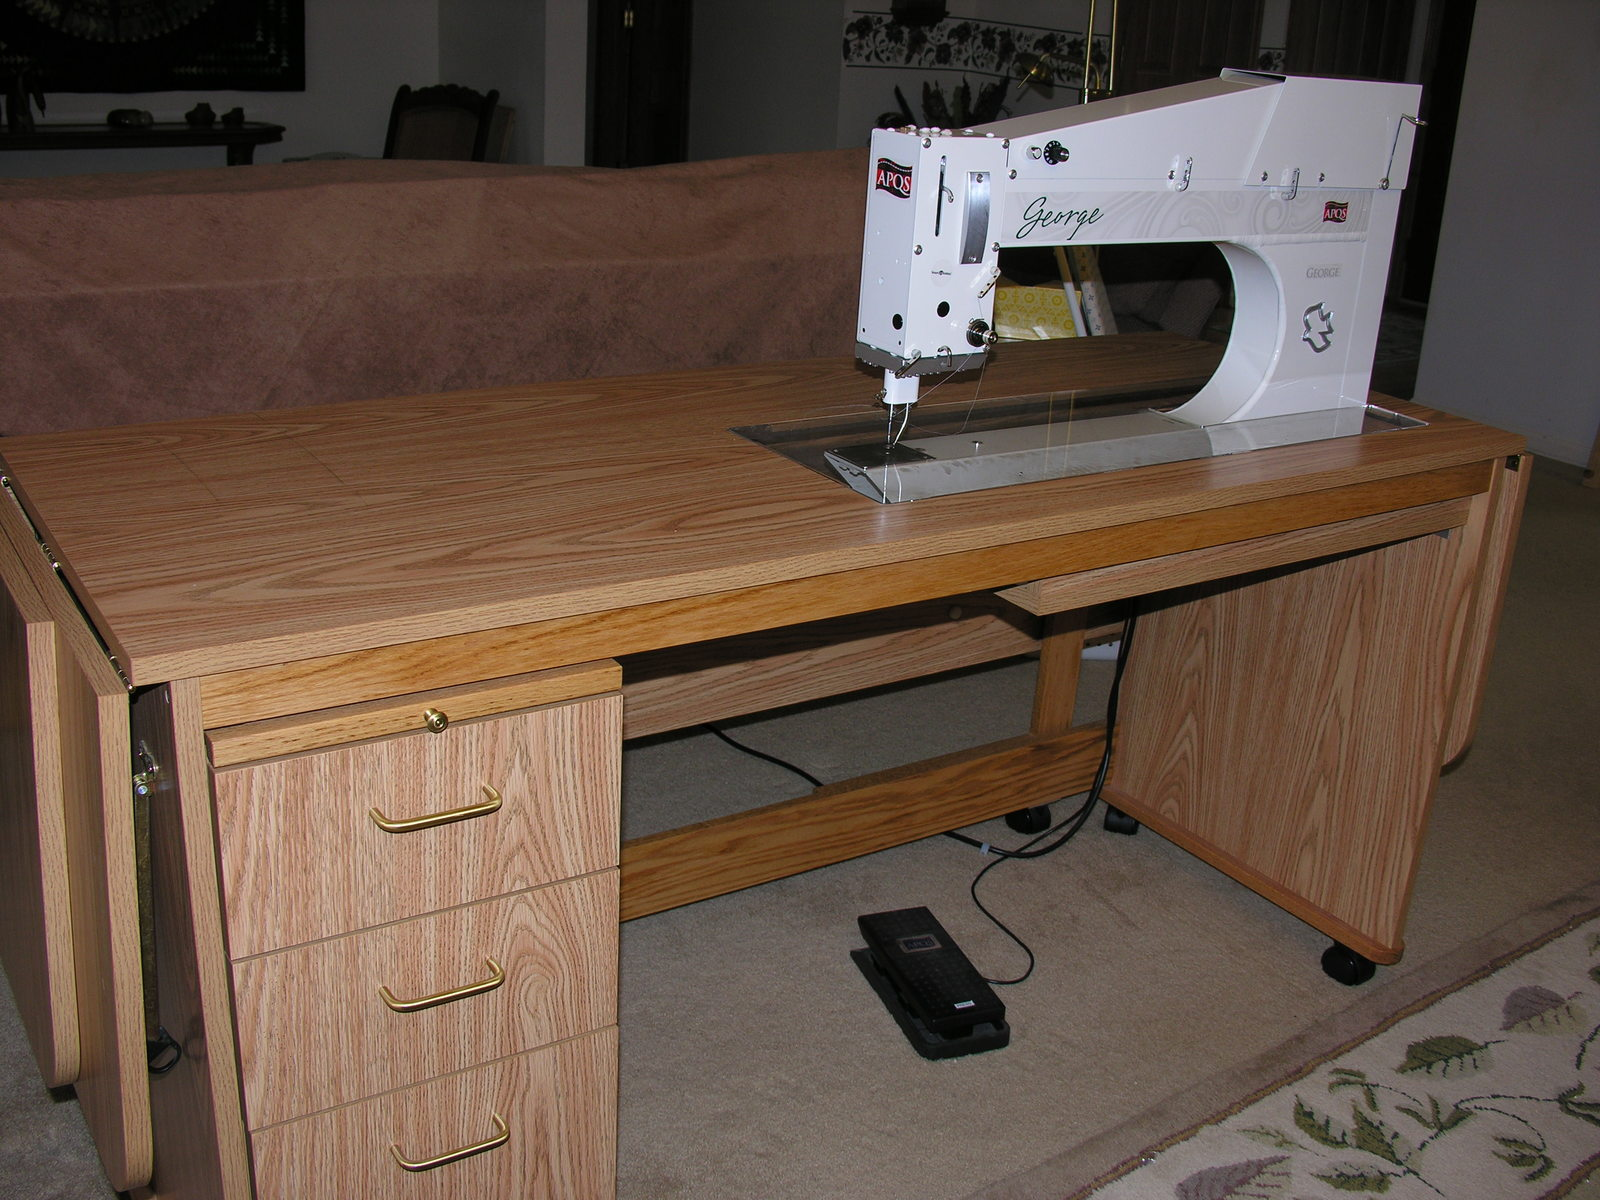 George for sale with Tracy table - George Quilting Machine - APQS ... : george quilting machine - Adamdwight.com